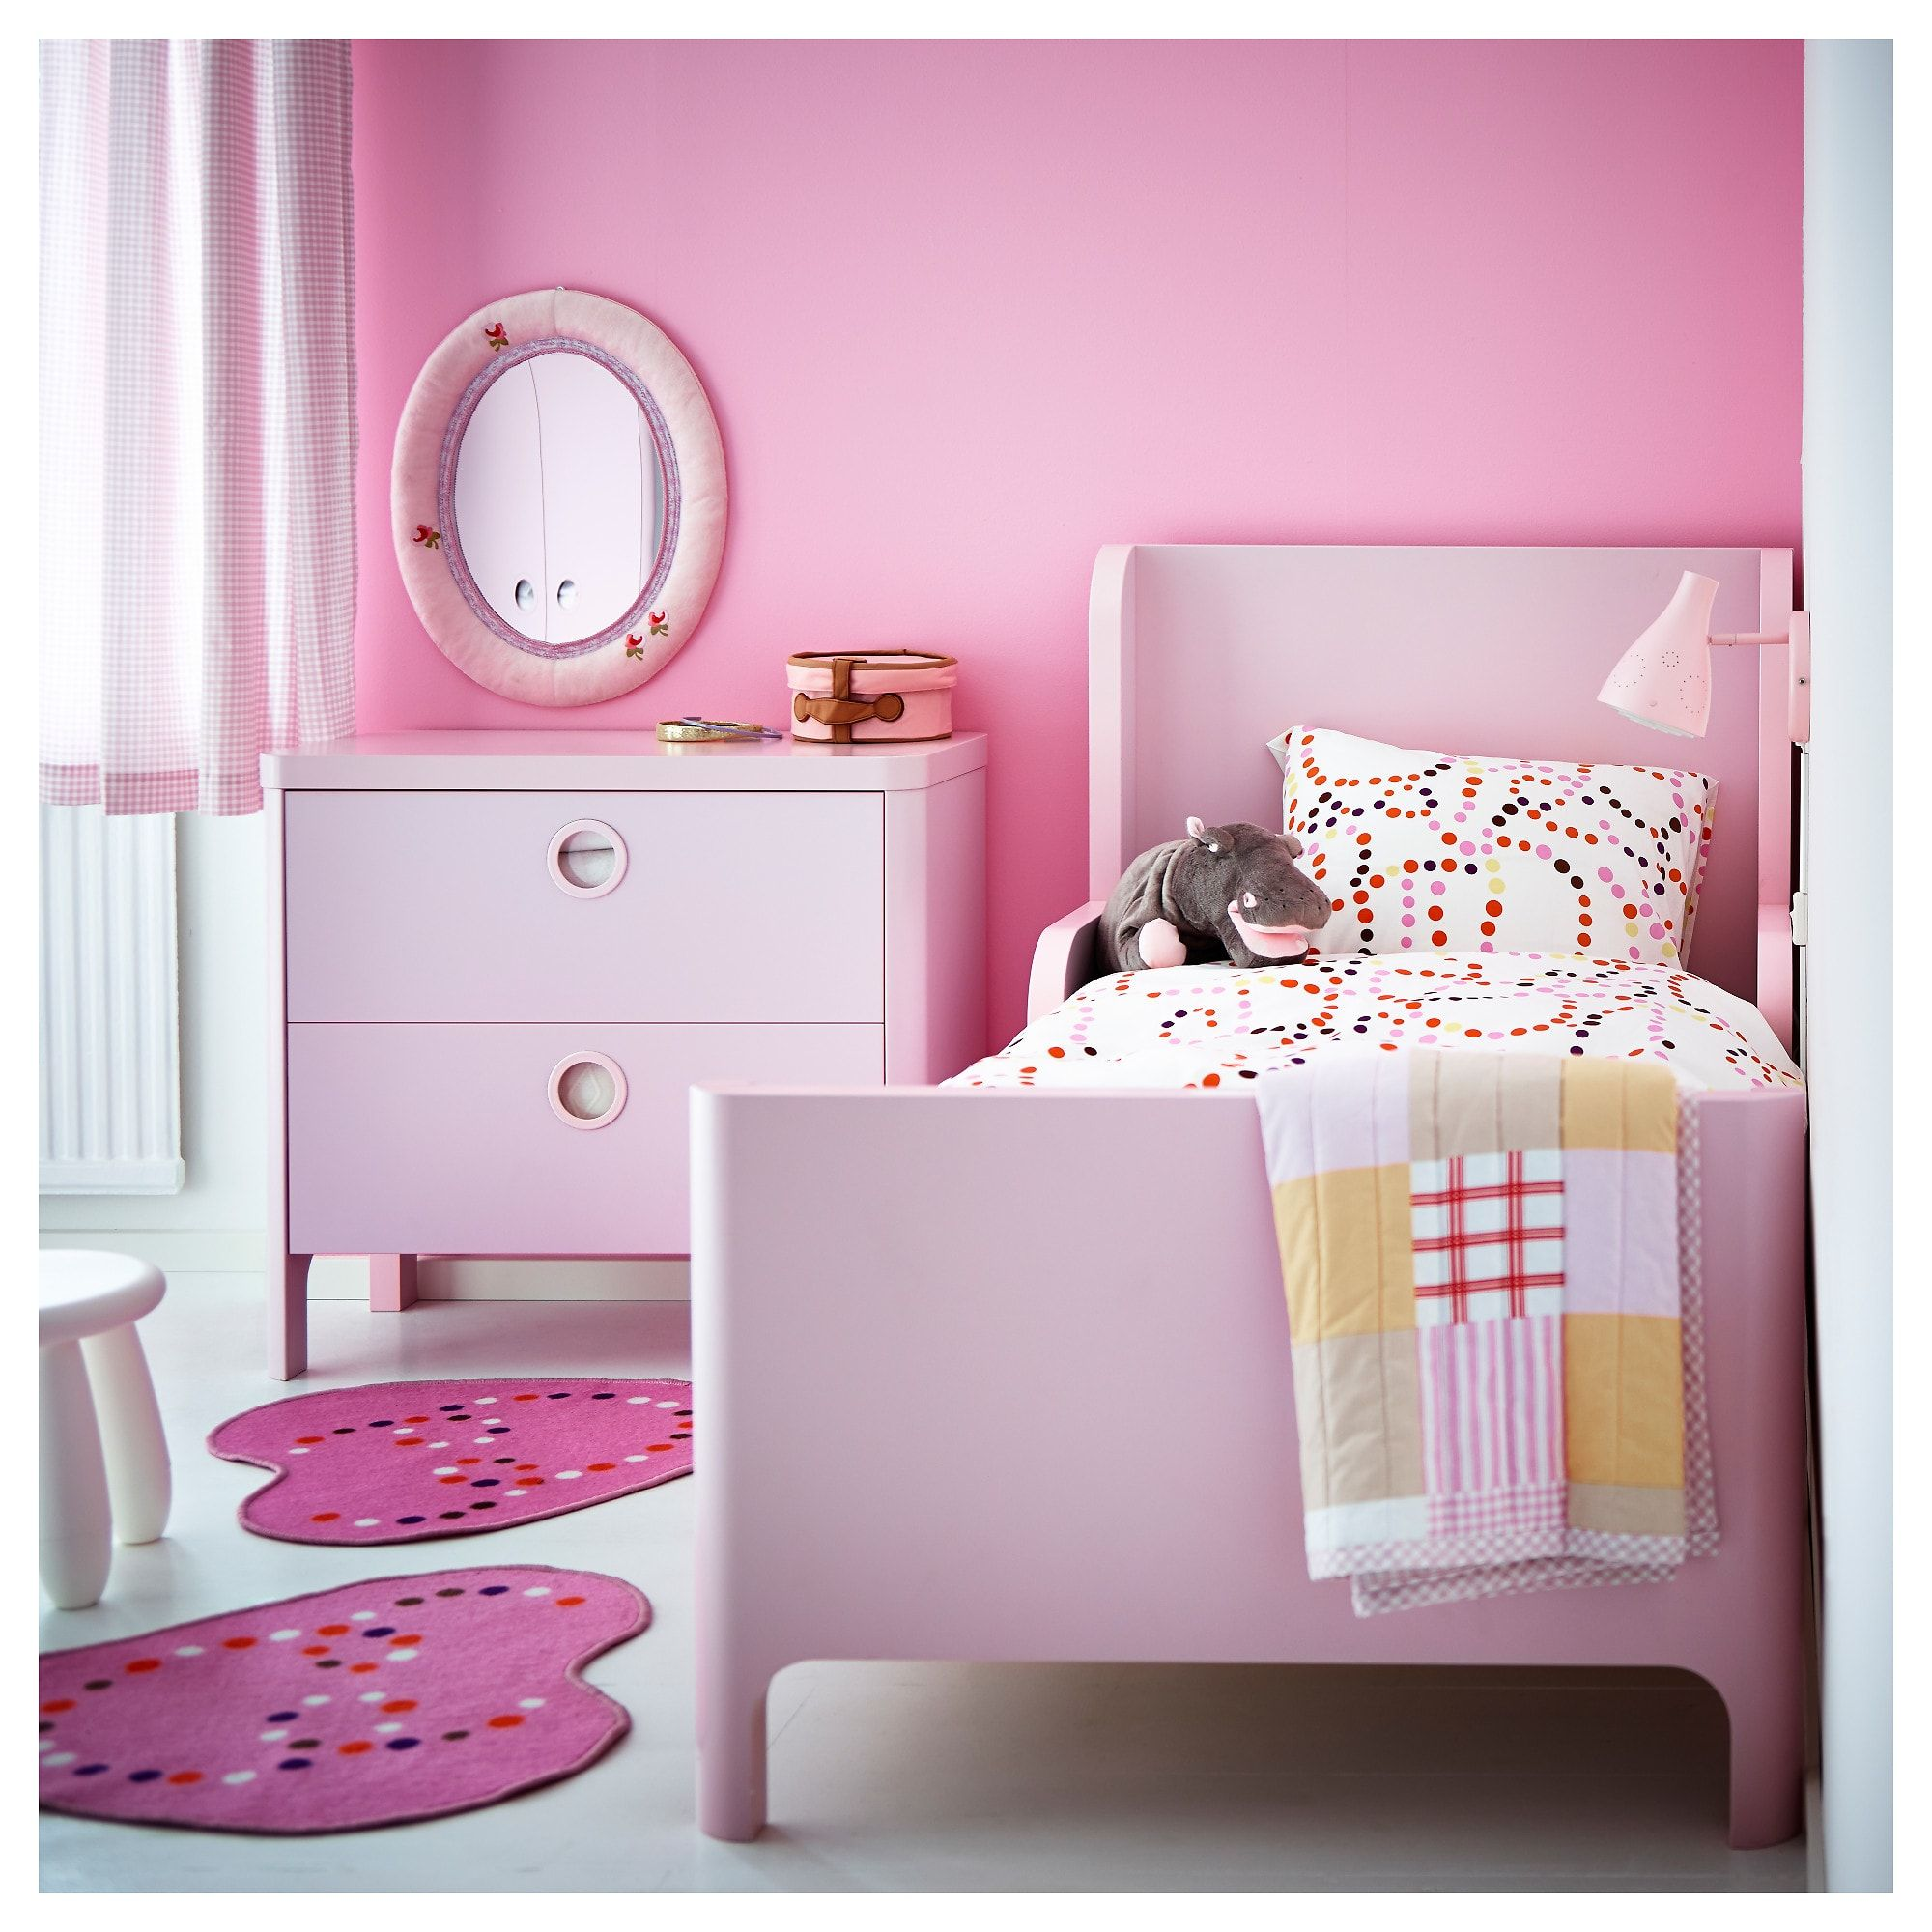 Busunge 2 Drawer Chest Light Pink 31 1 2x29 1 2 Childrens